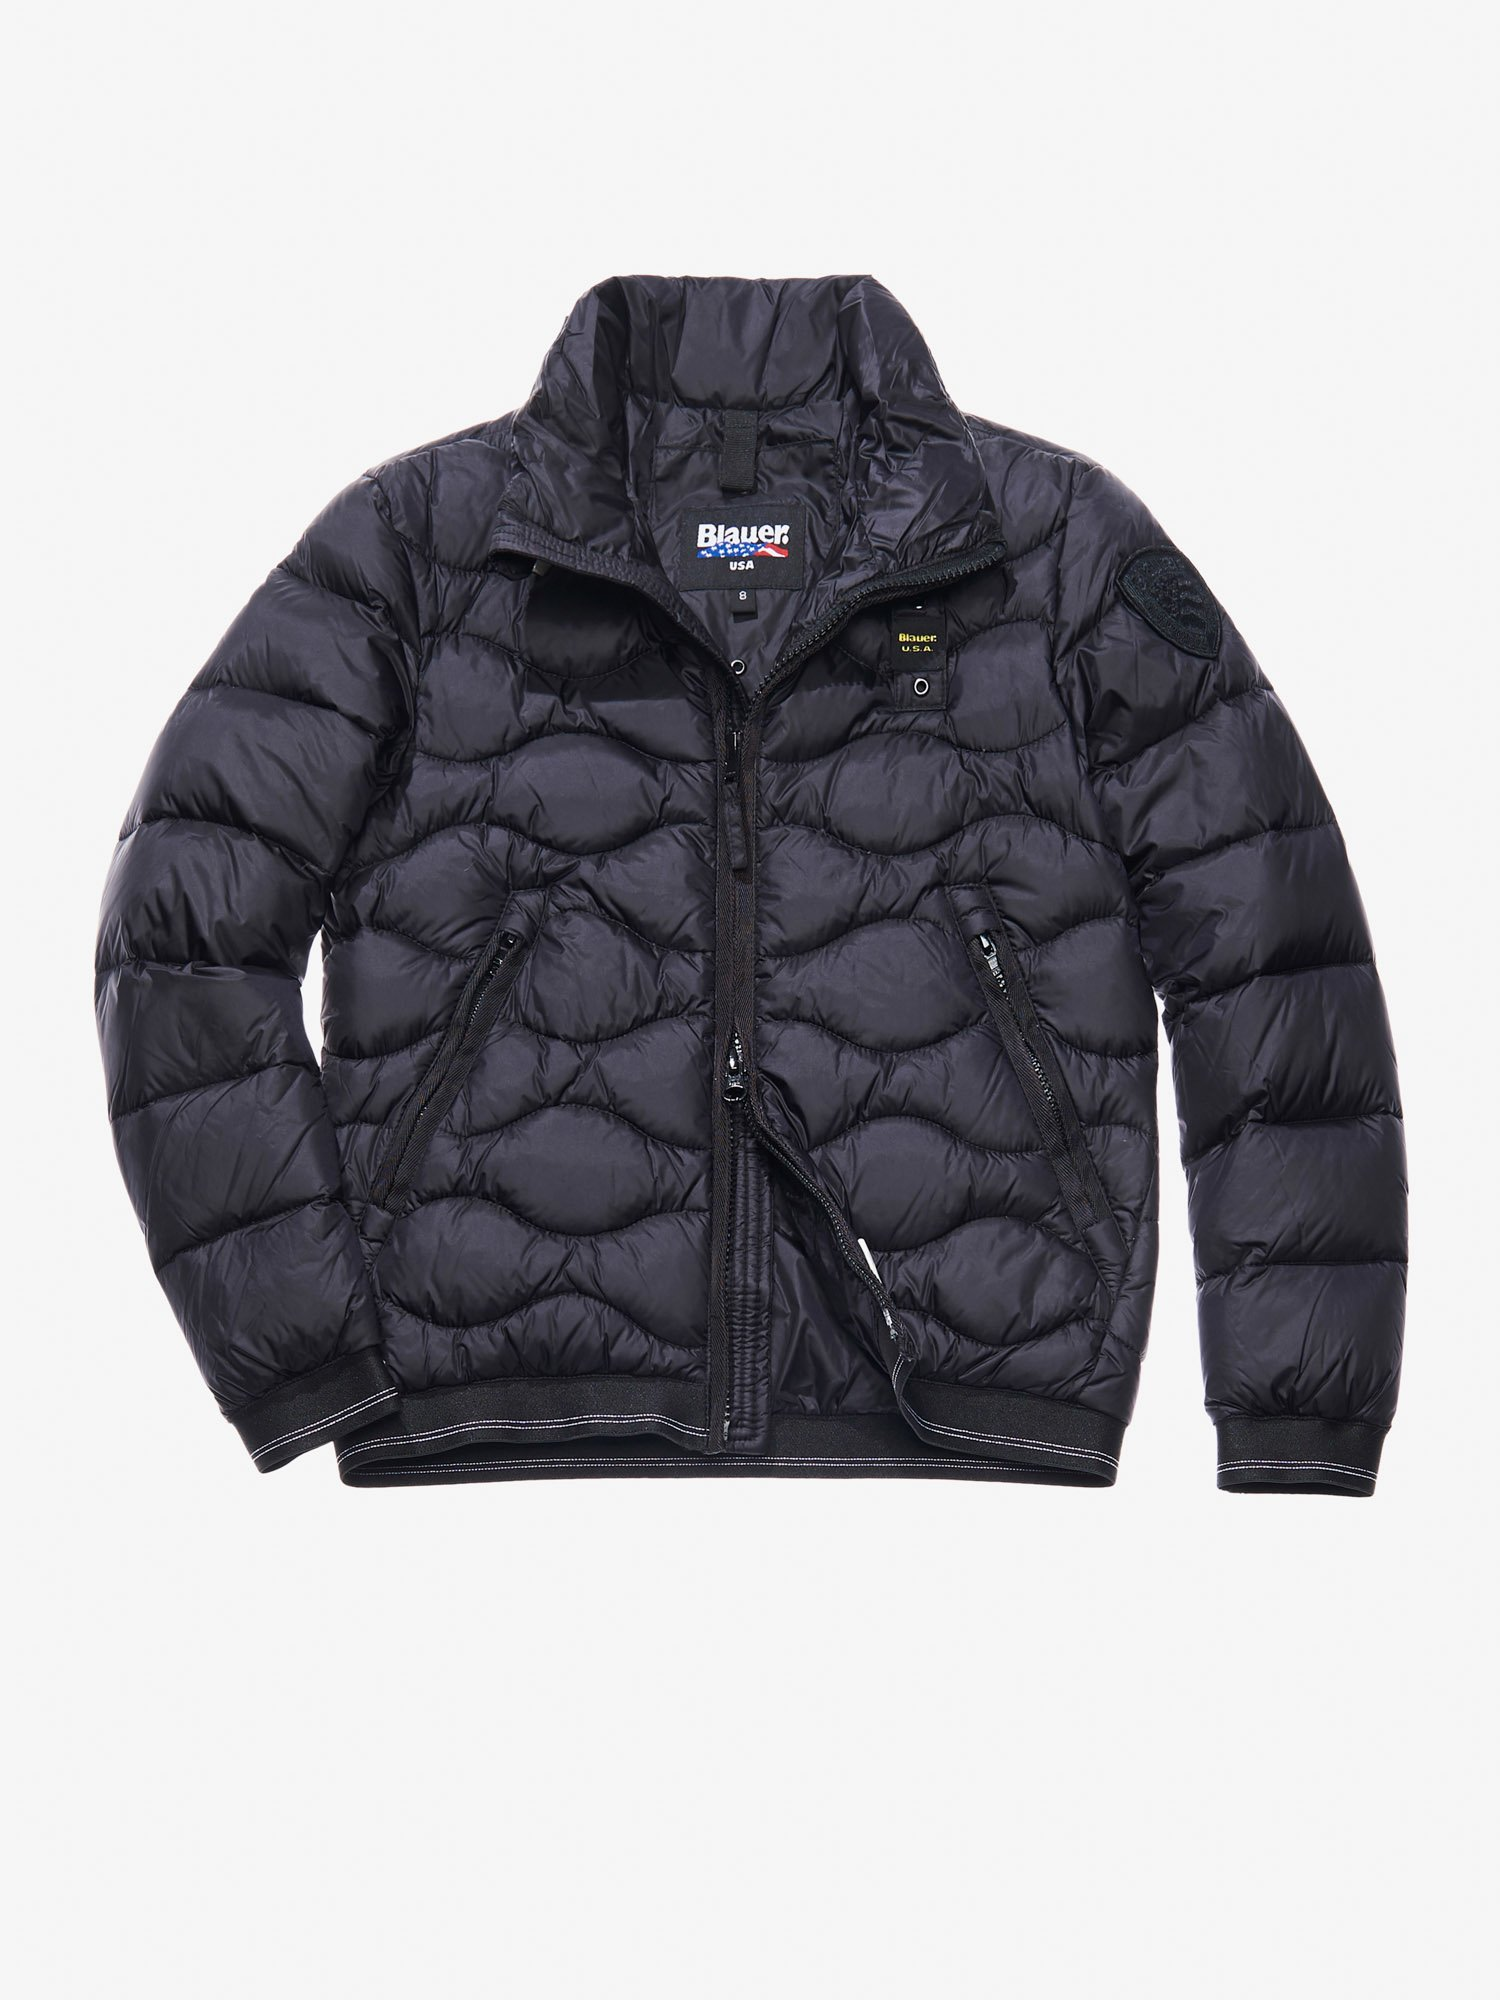 Blauer - VASCO WAVE-QUILTED DOWN JACKET - Black - Blauer